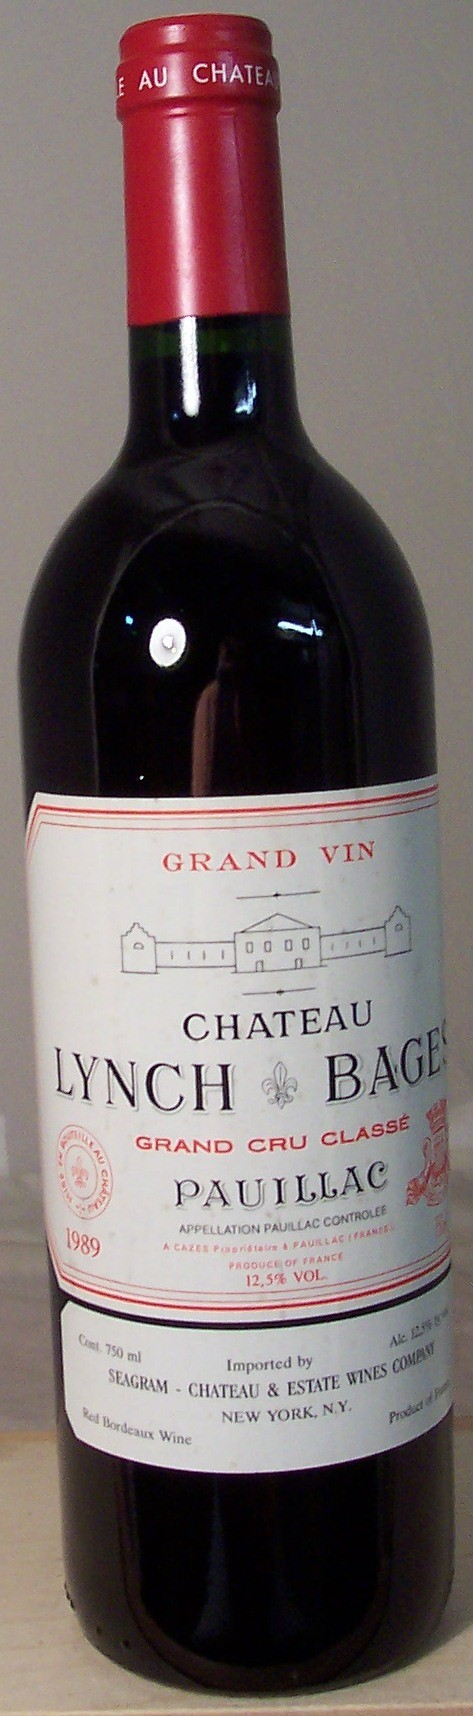 Chateau Lynch Bages Pauillac 1989